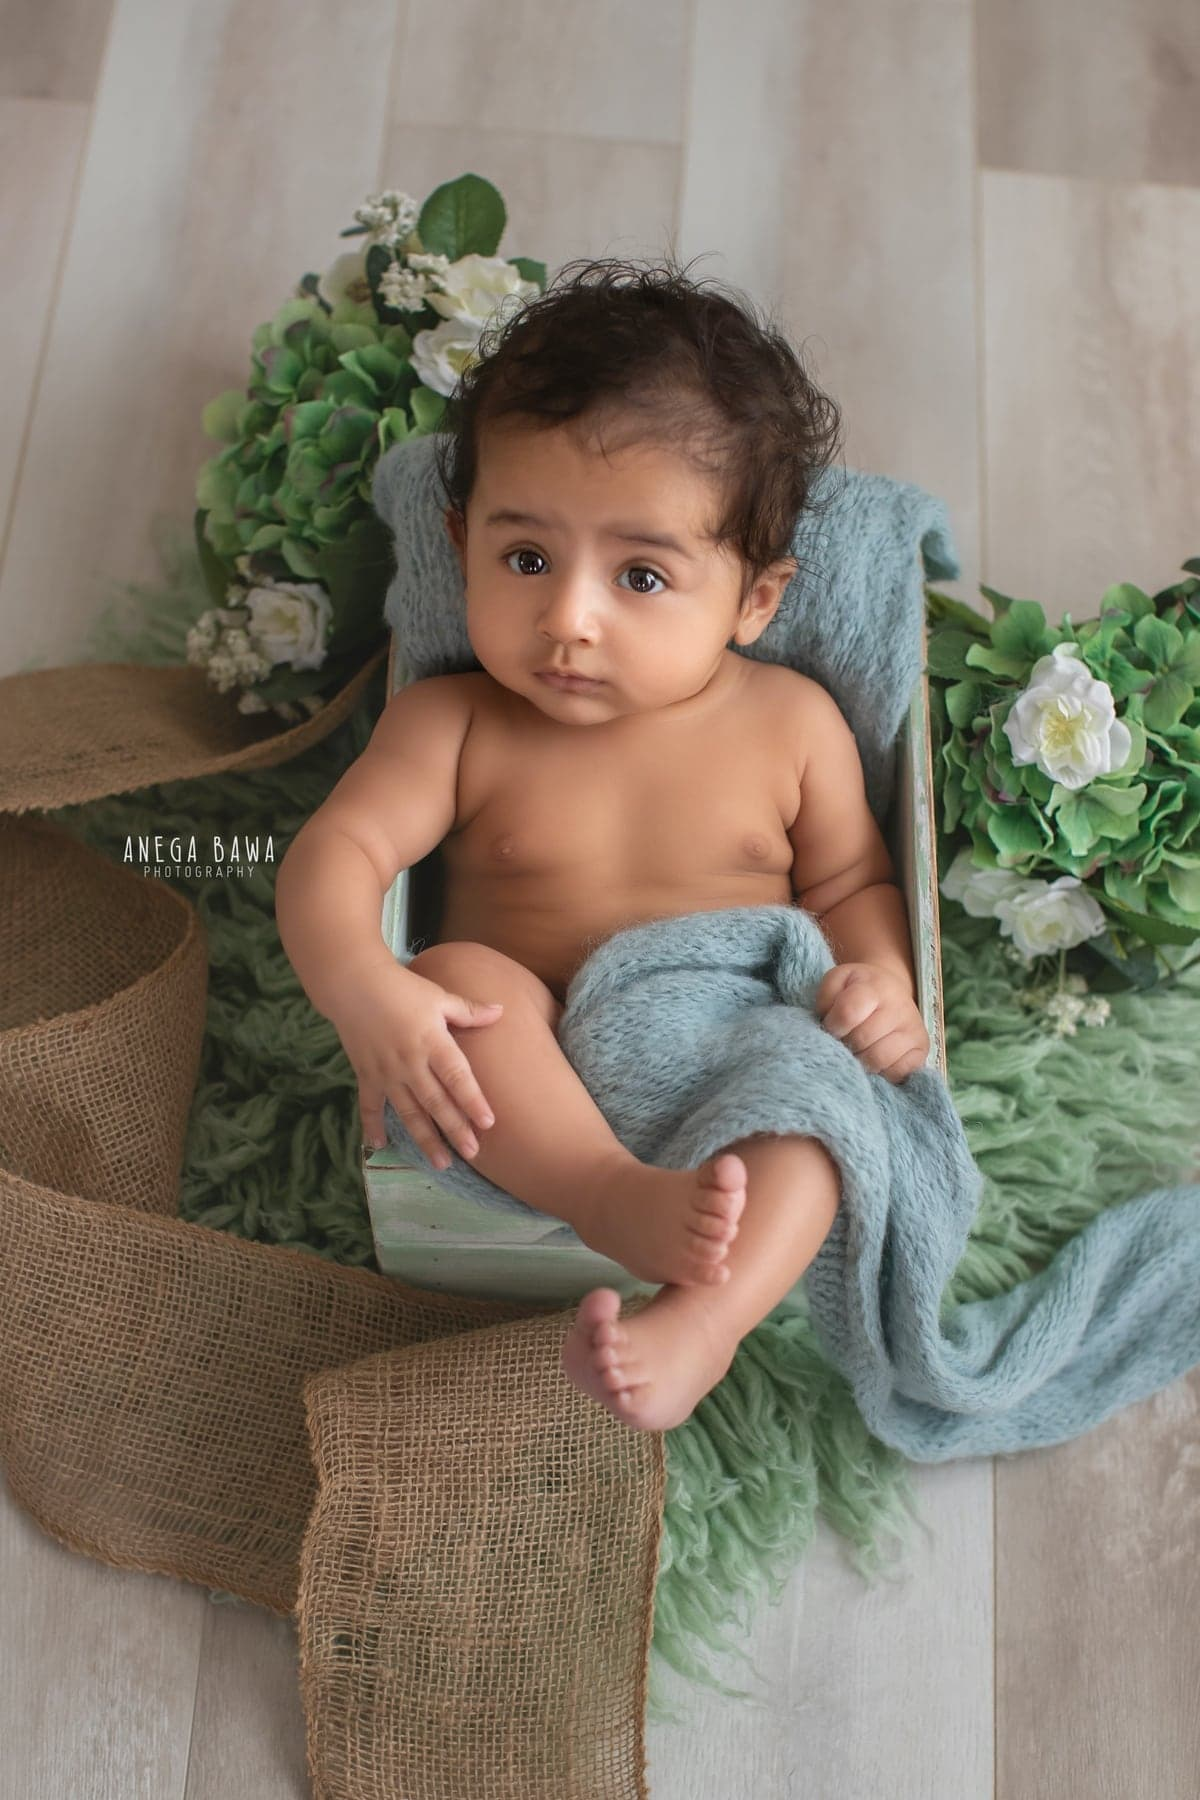 245603-white-wooden-background-green-floral-baby-photography-delhi-5-6-7-months-baby-photoshoot-gurgaon-anega-bawa